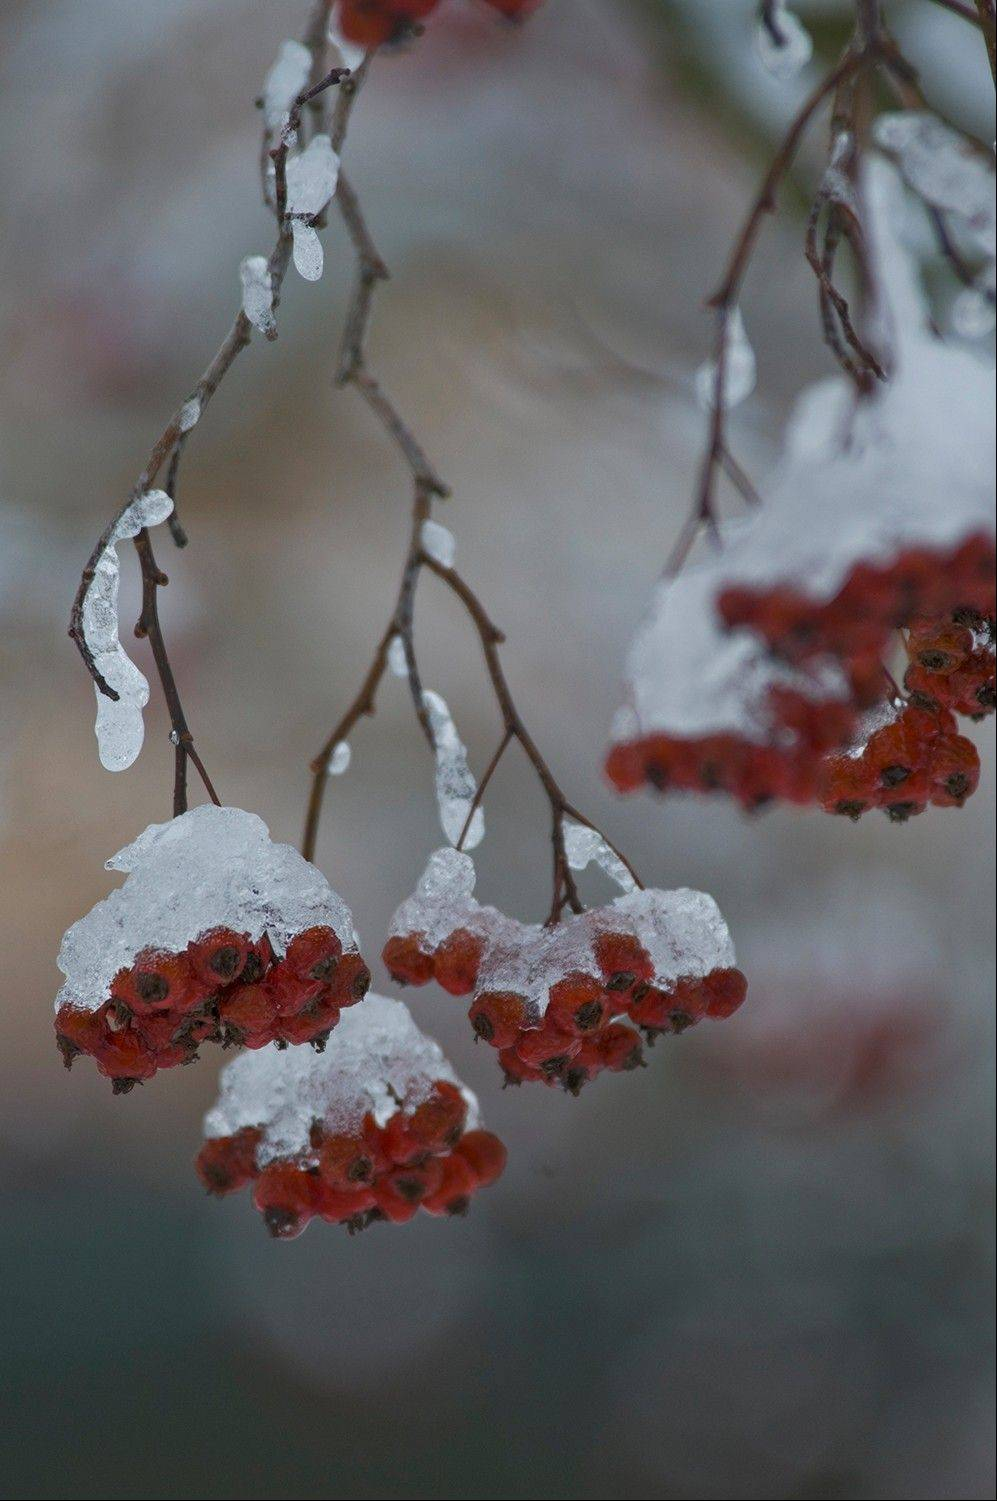 Once the snow or ice has frozen on the plants, it is best to leave it alone and let it melt off.